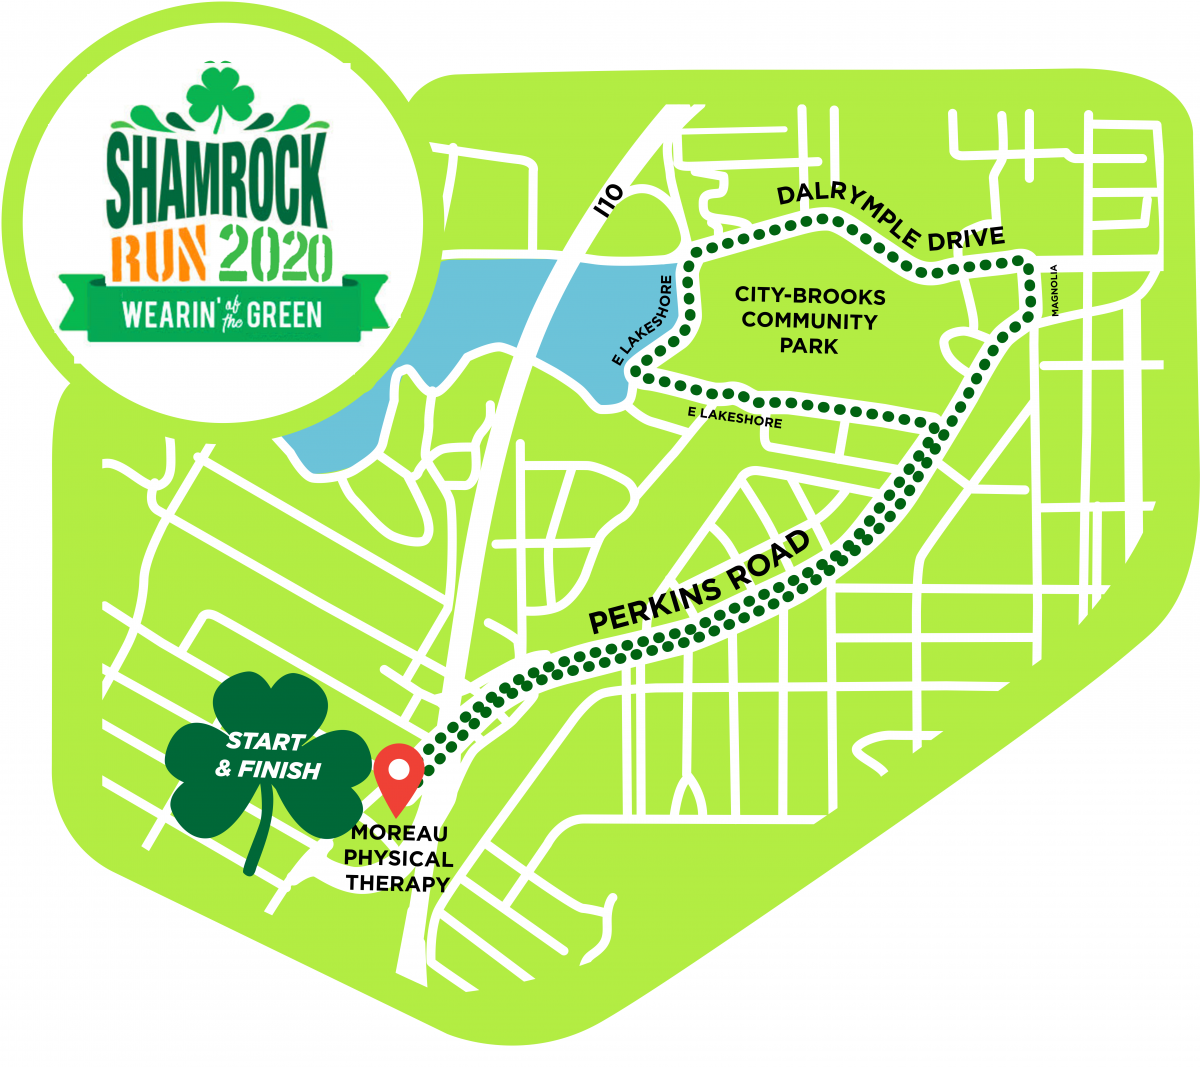 5K Shamrock Run Route Map